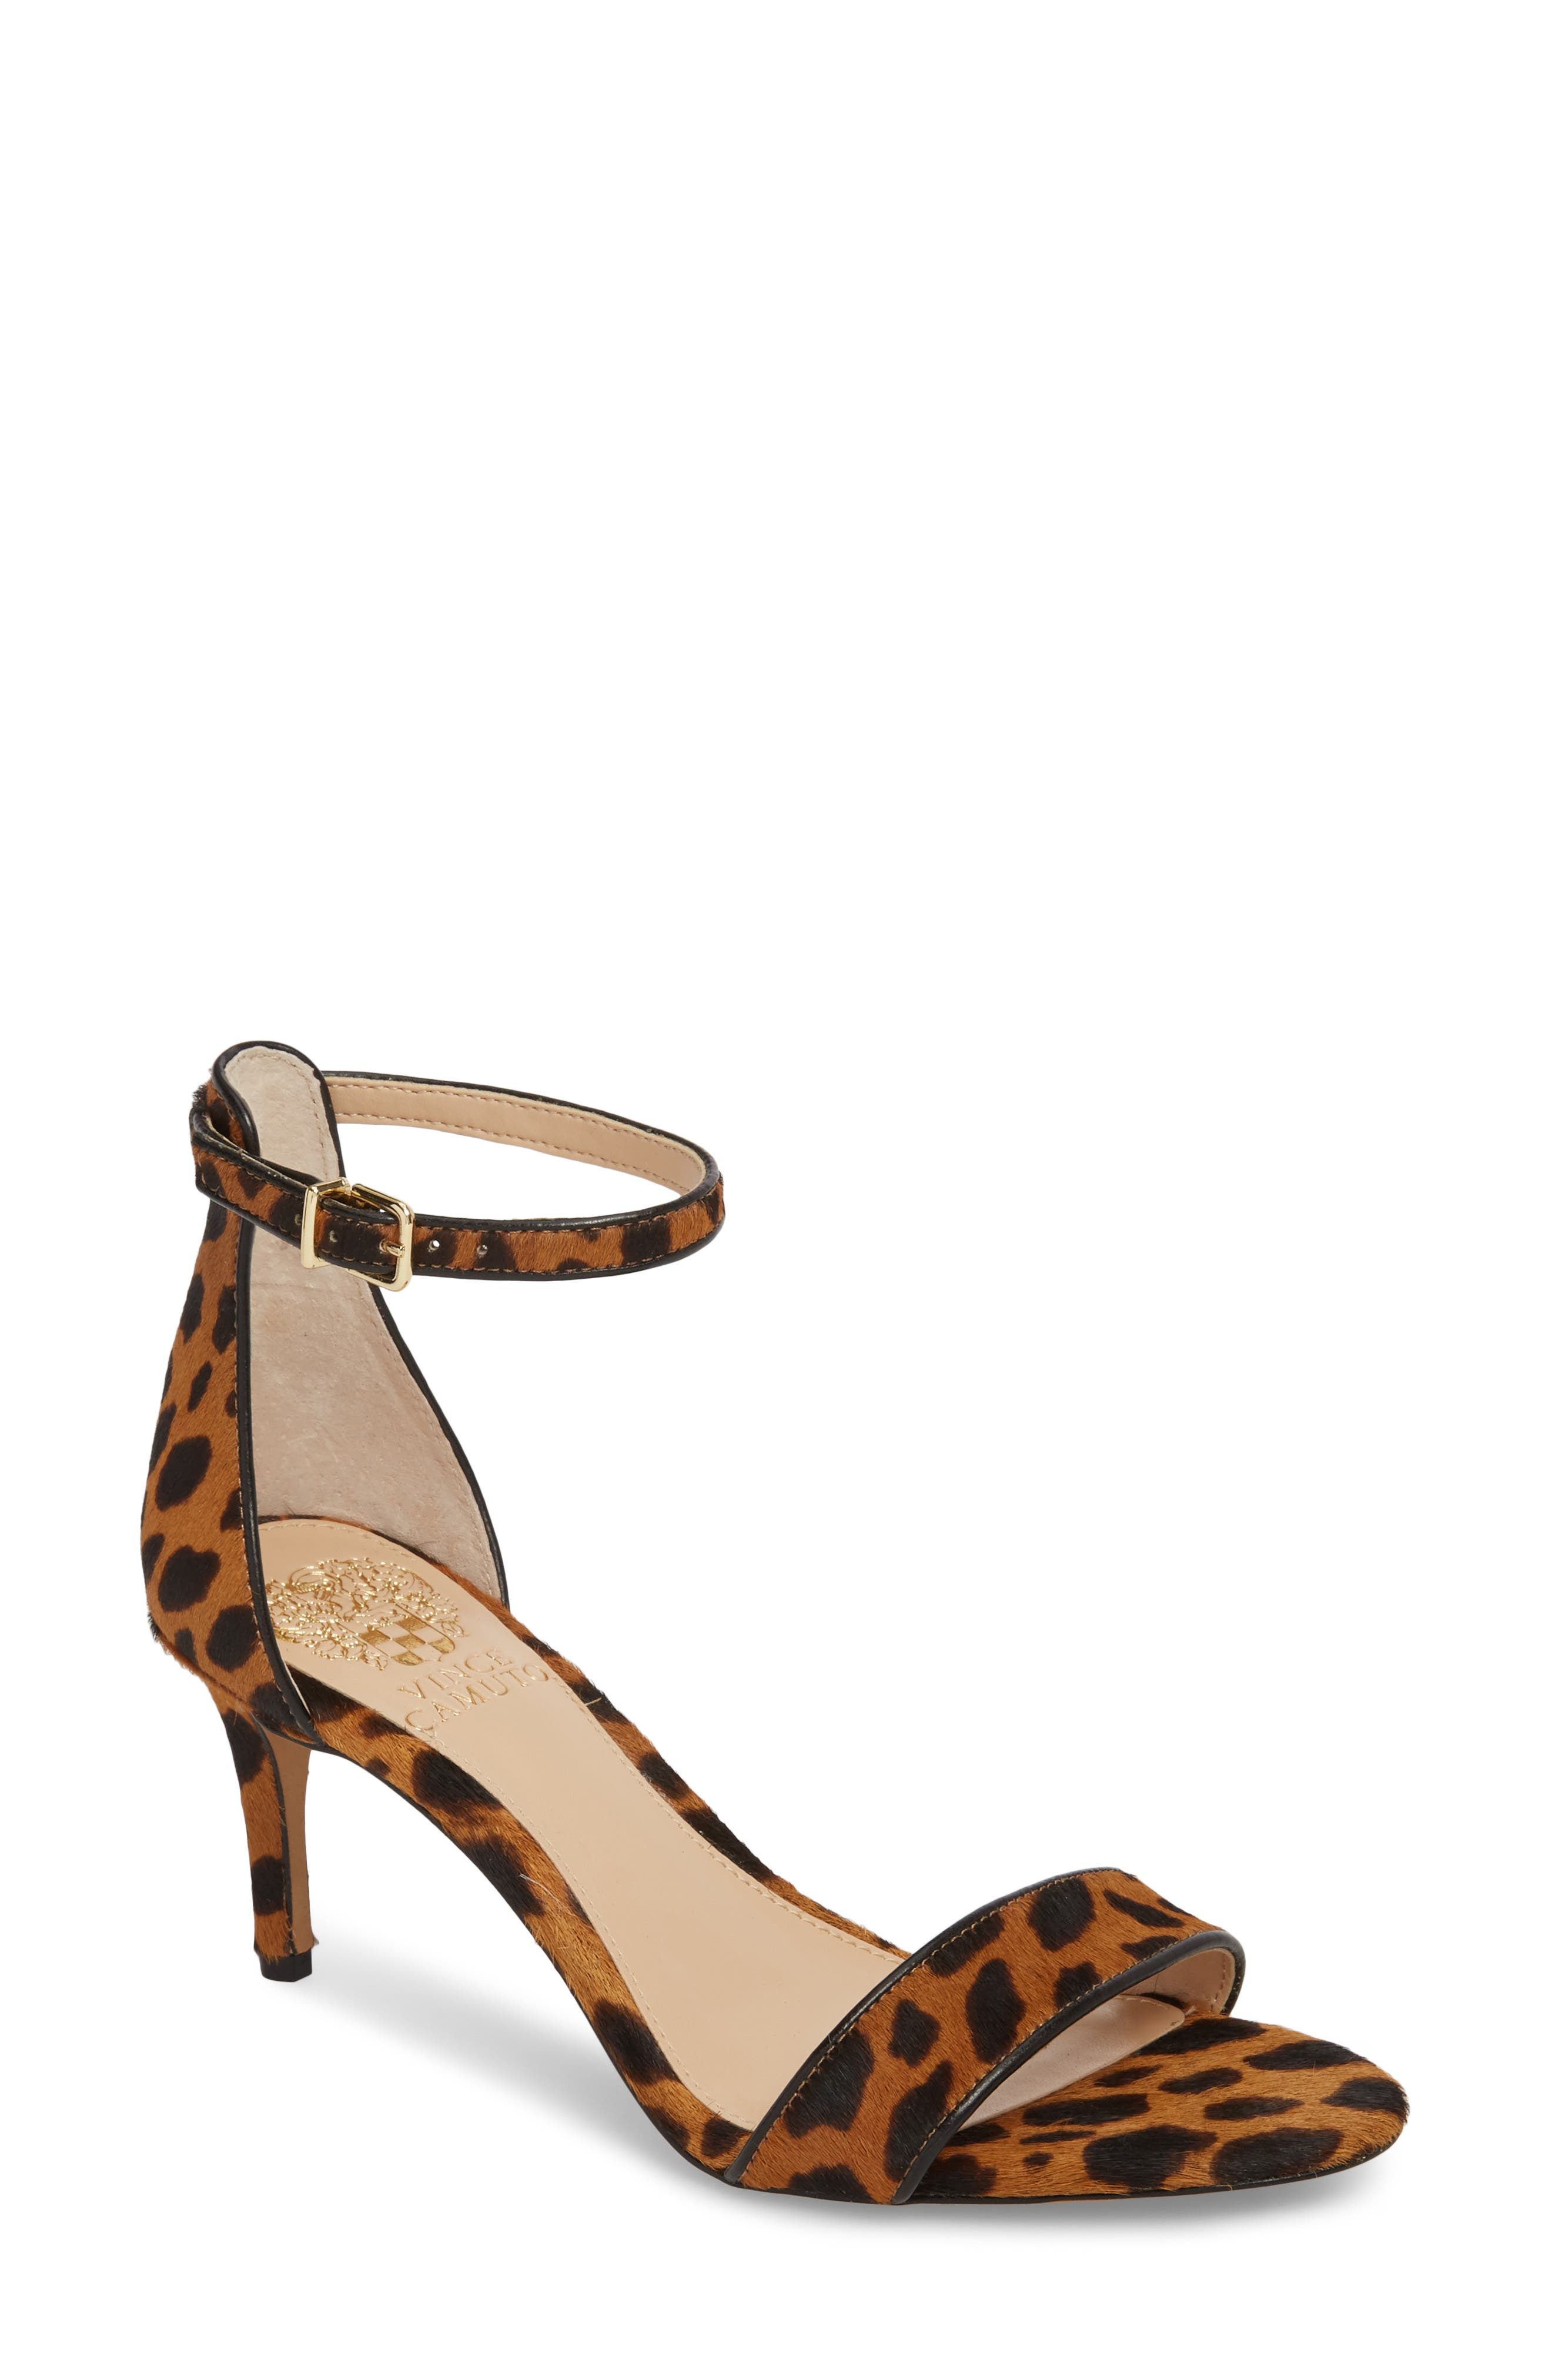 A slender heel adds just-right height to a barely there sandal topped with a dainty ankle strap. Style Name: Vince Camuto Sebatini Genuine Calf Hair Sandal (Women). Style Number: 5537278 1. Available in stores.